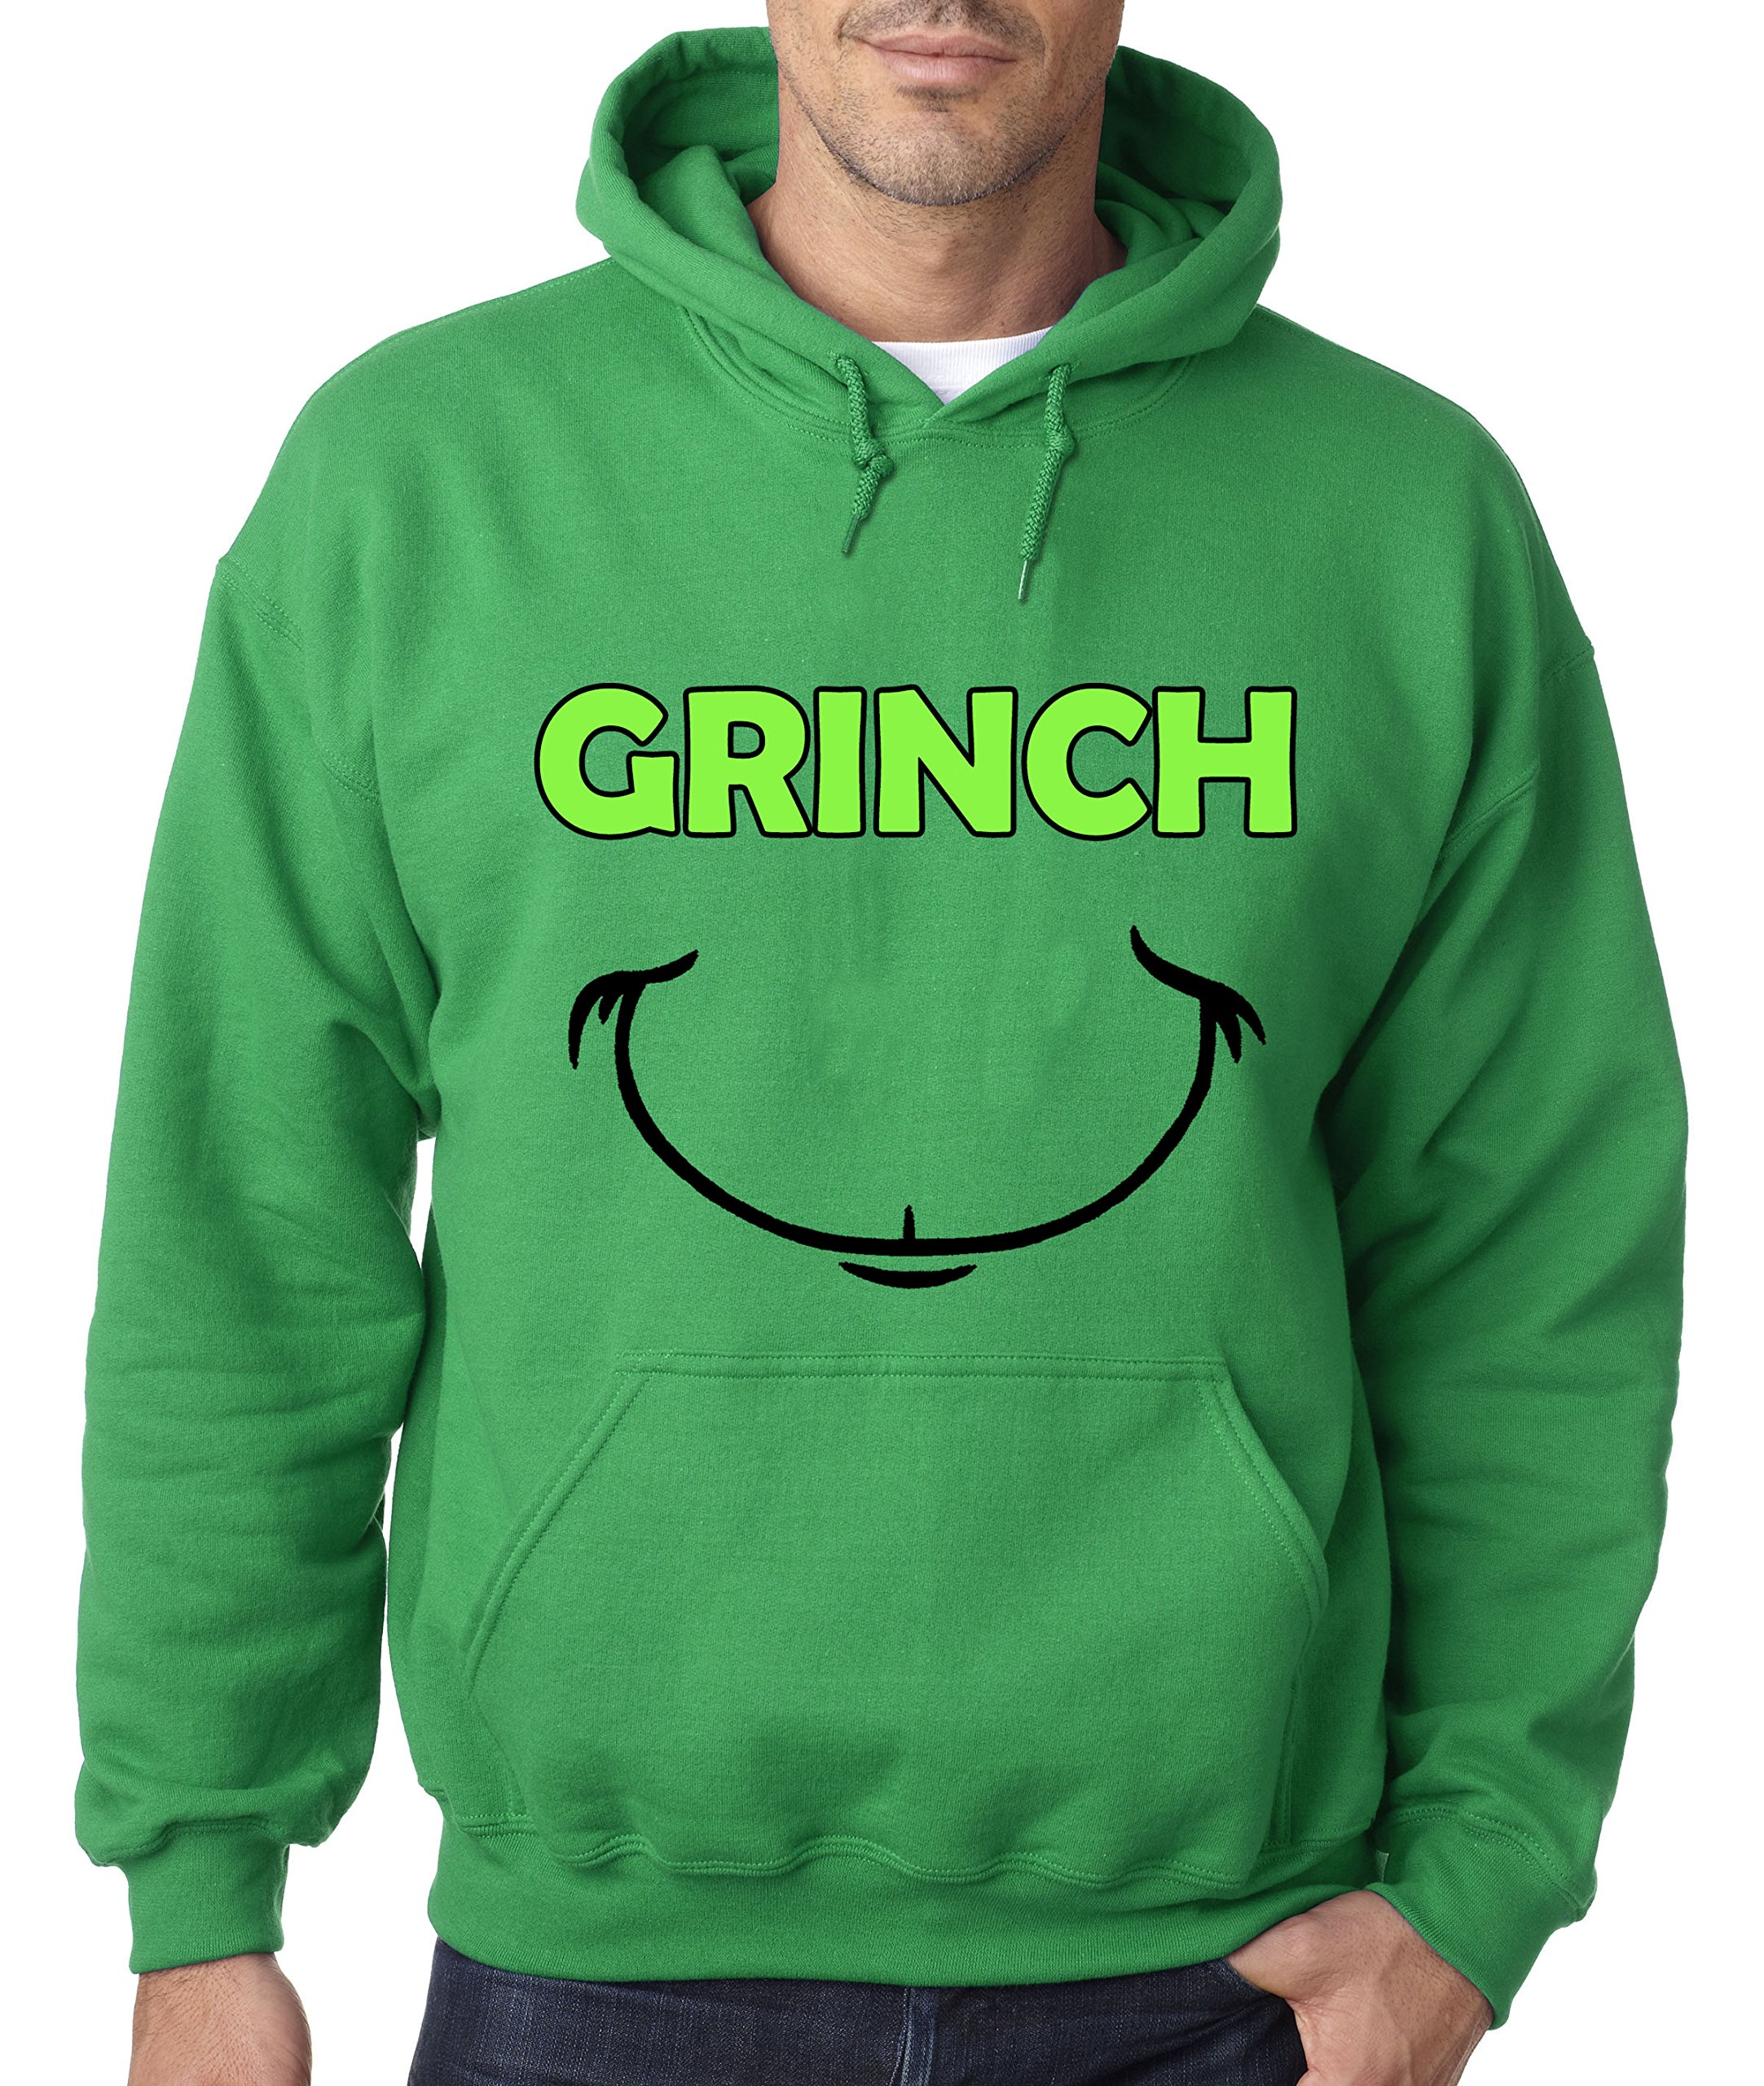 Check Out This Awesome 605 Grinch Smile Christmas Unisex Pullover Sweatsh Shirts